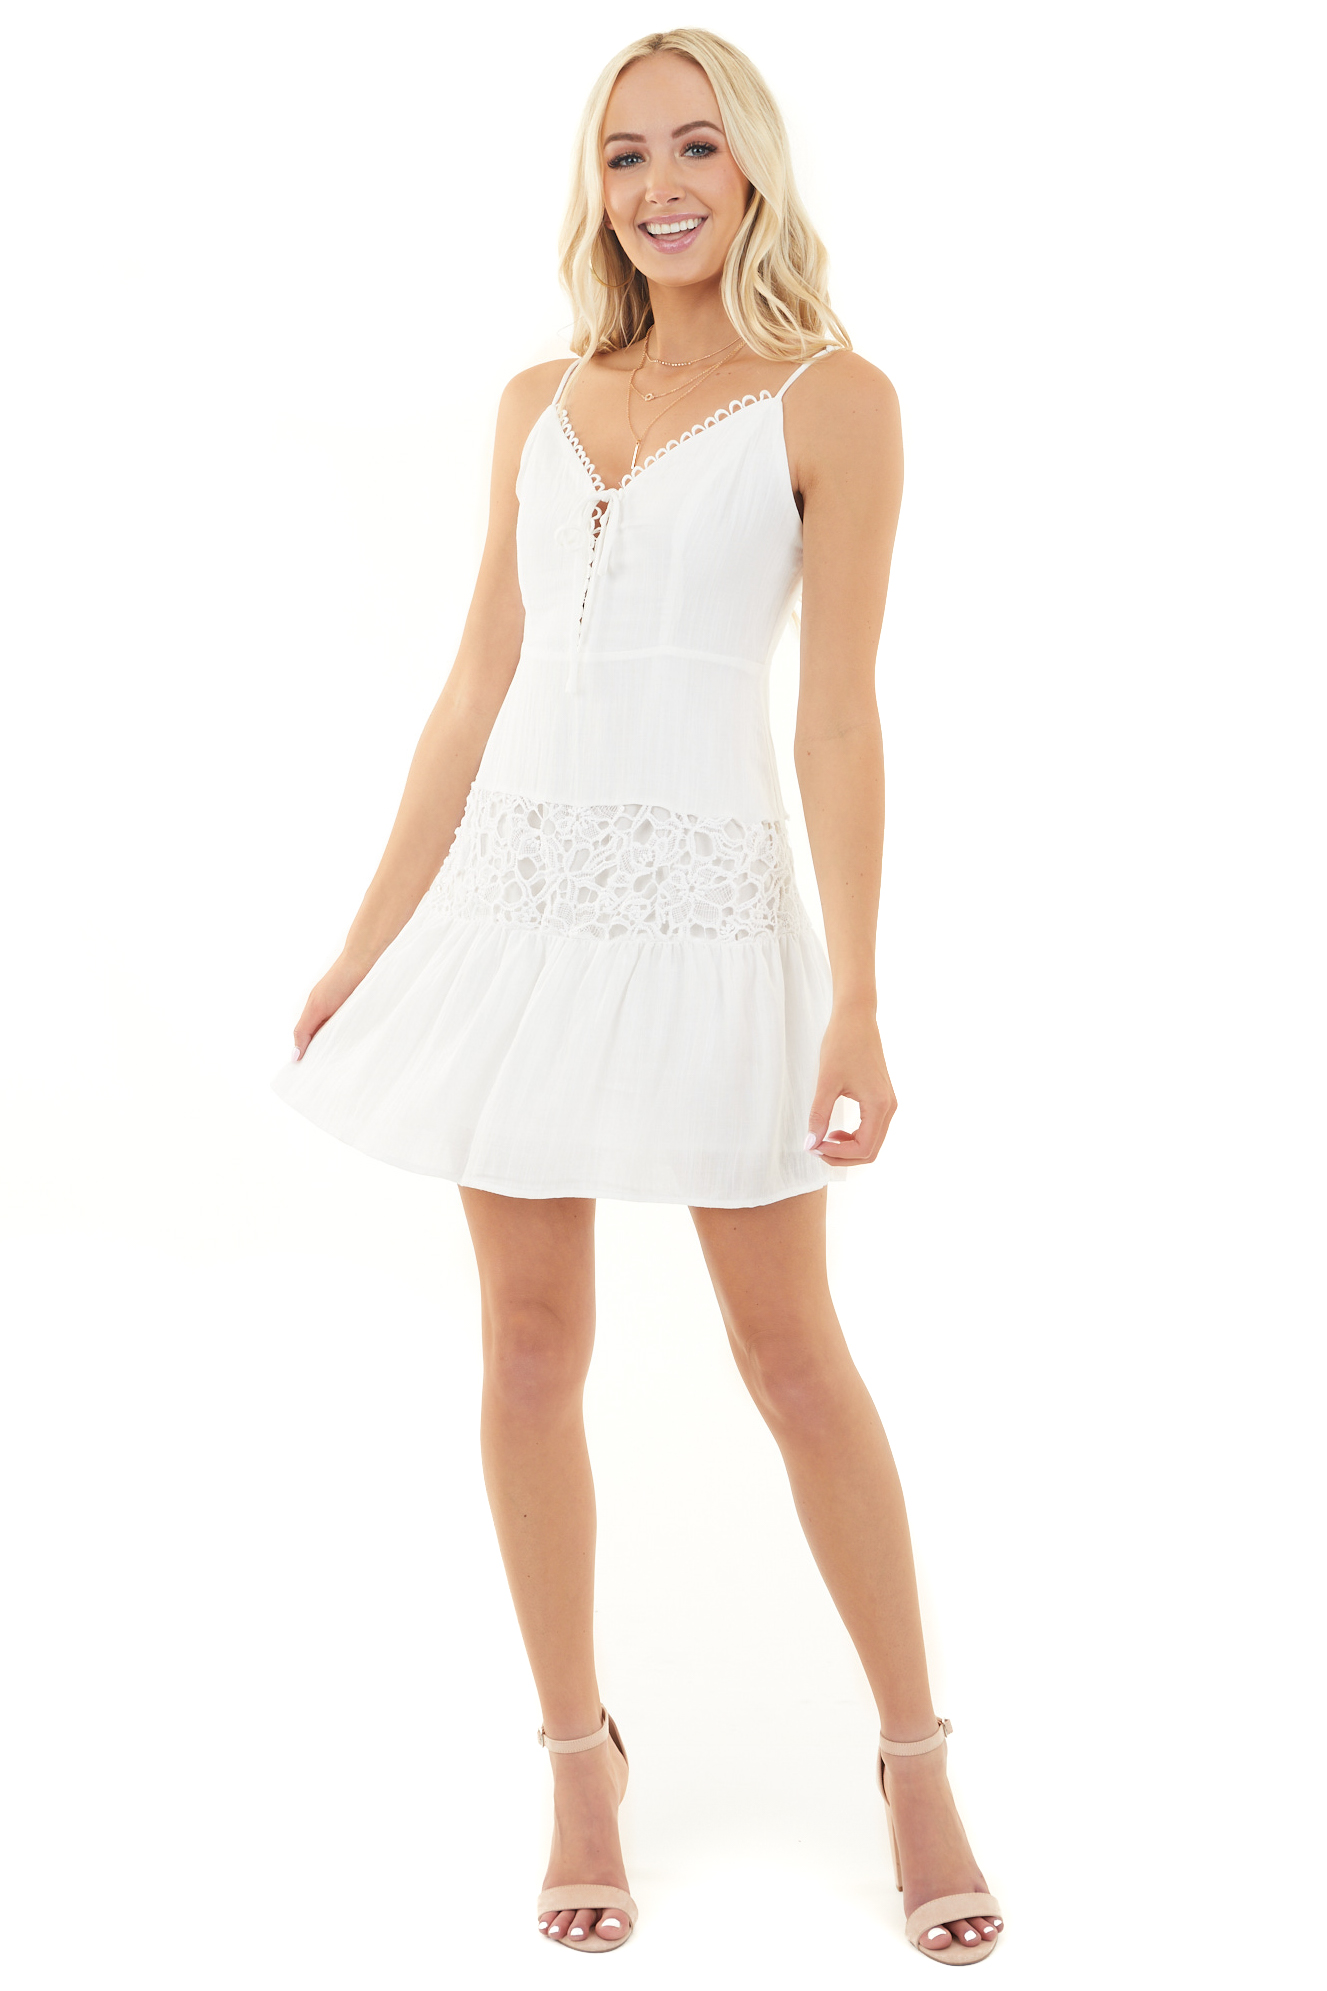 Off White Sleeveless Tiered Dress with Lace Details